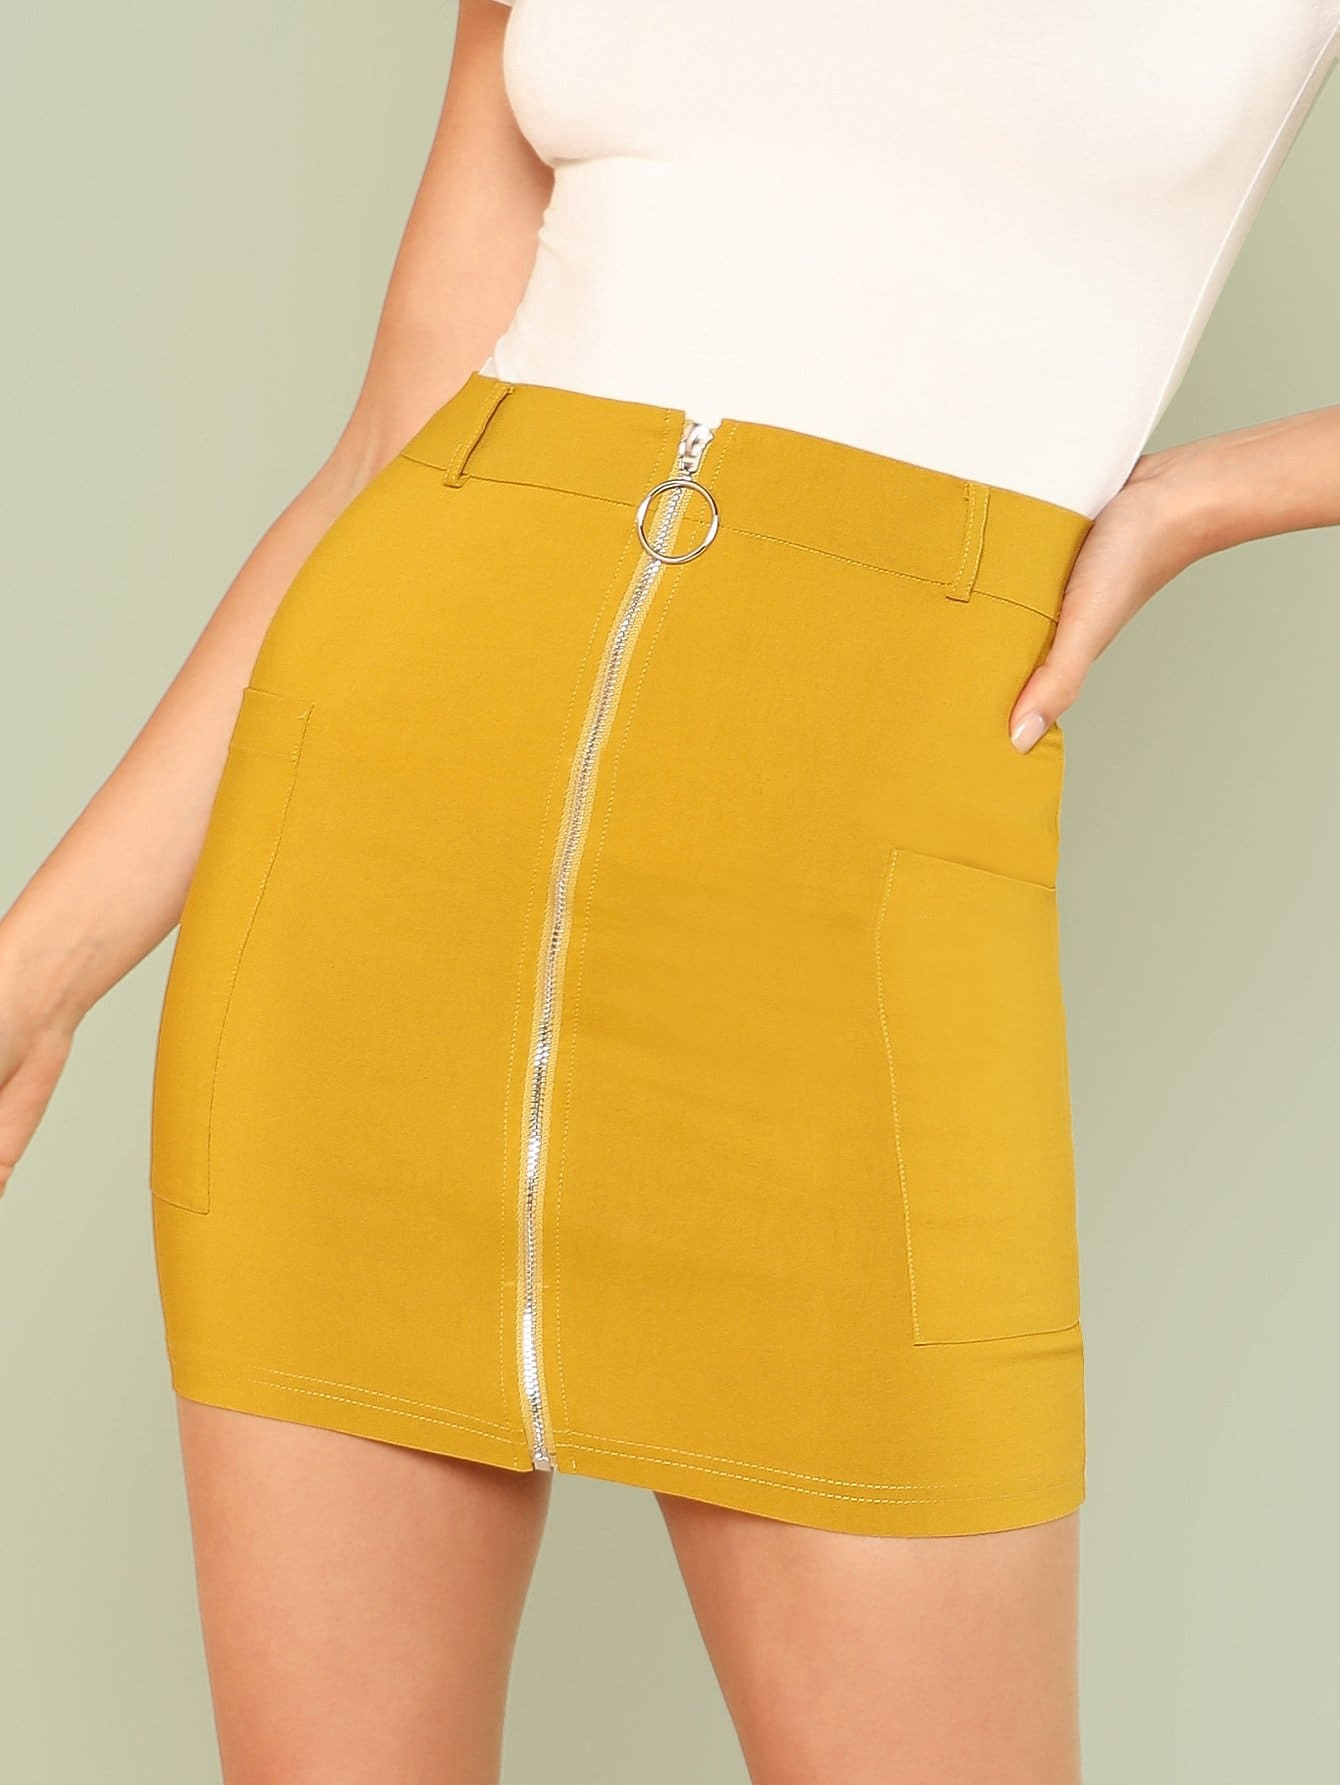 Pocket Patched O-Ring Zip Up Skirt high waist pocket patched dot skirt